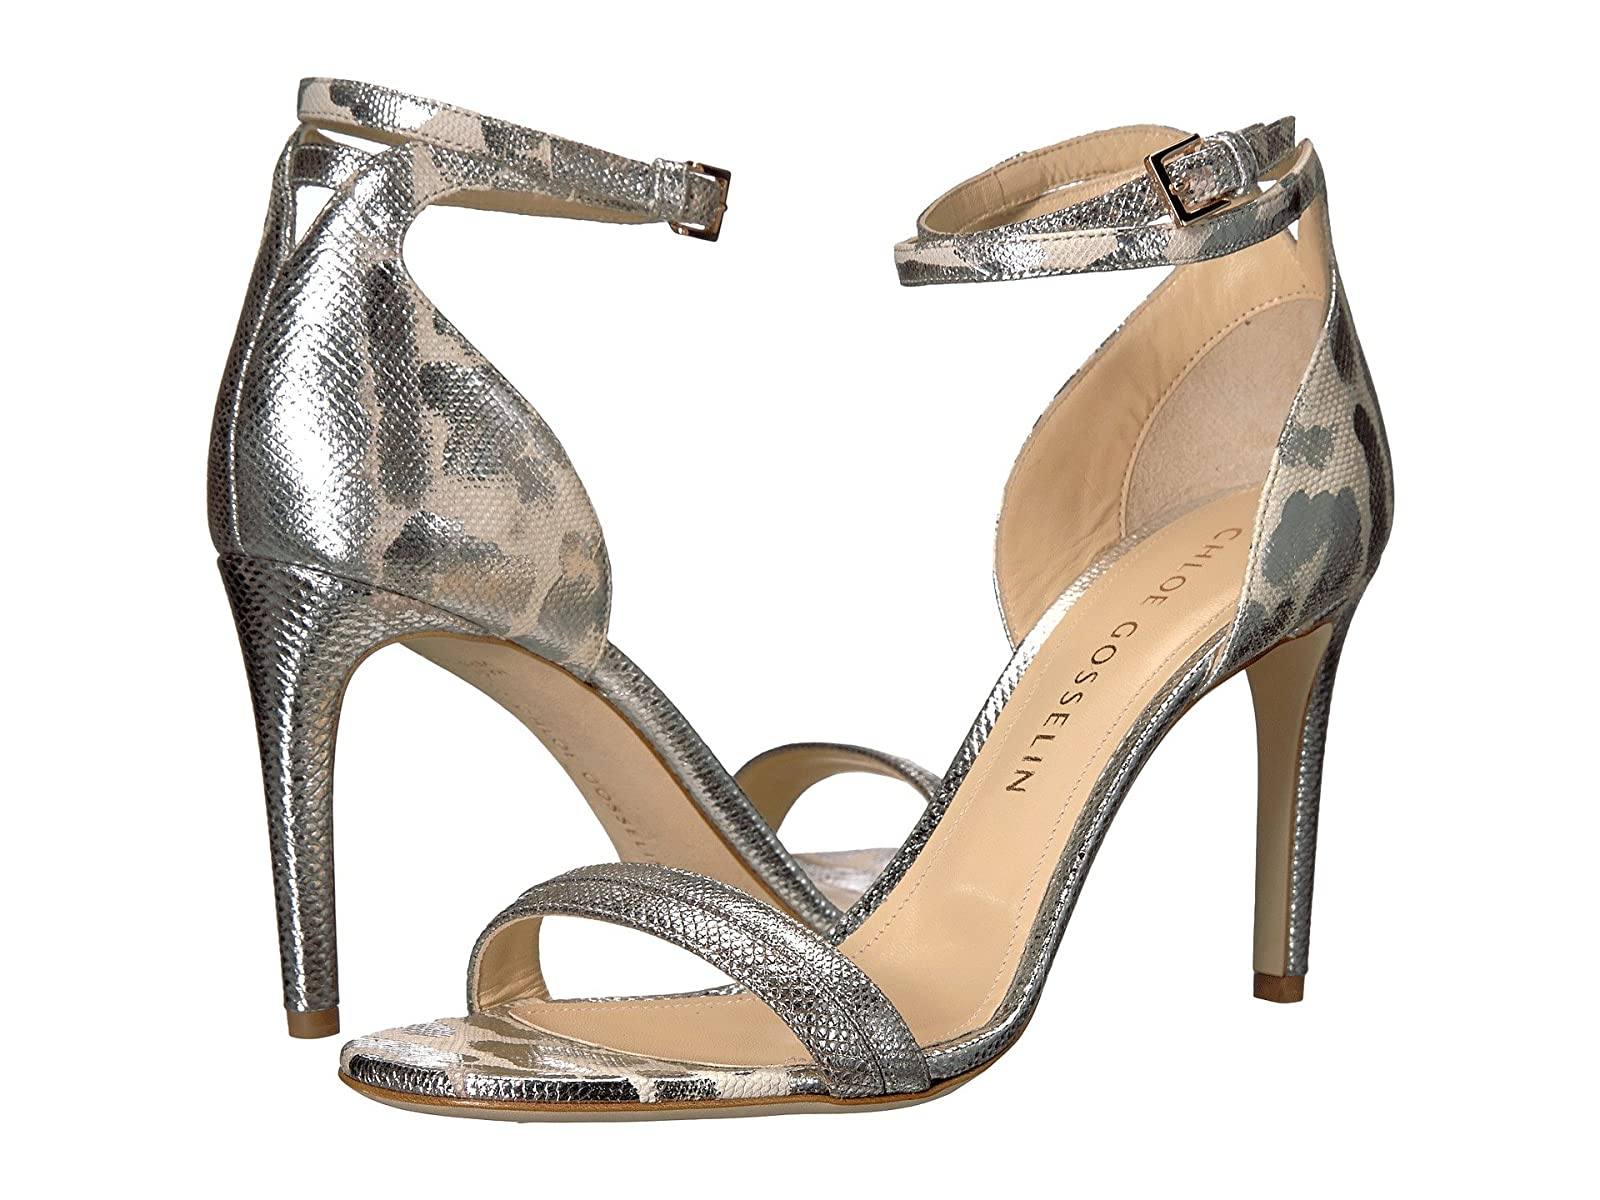 CHLOE GOSSELIN NarcissusCheap and distinctive eye-catching shoes